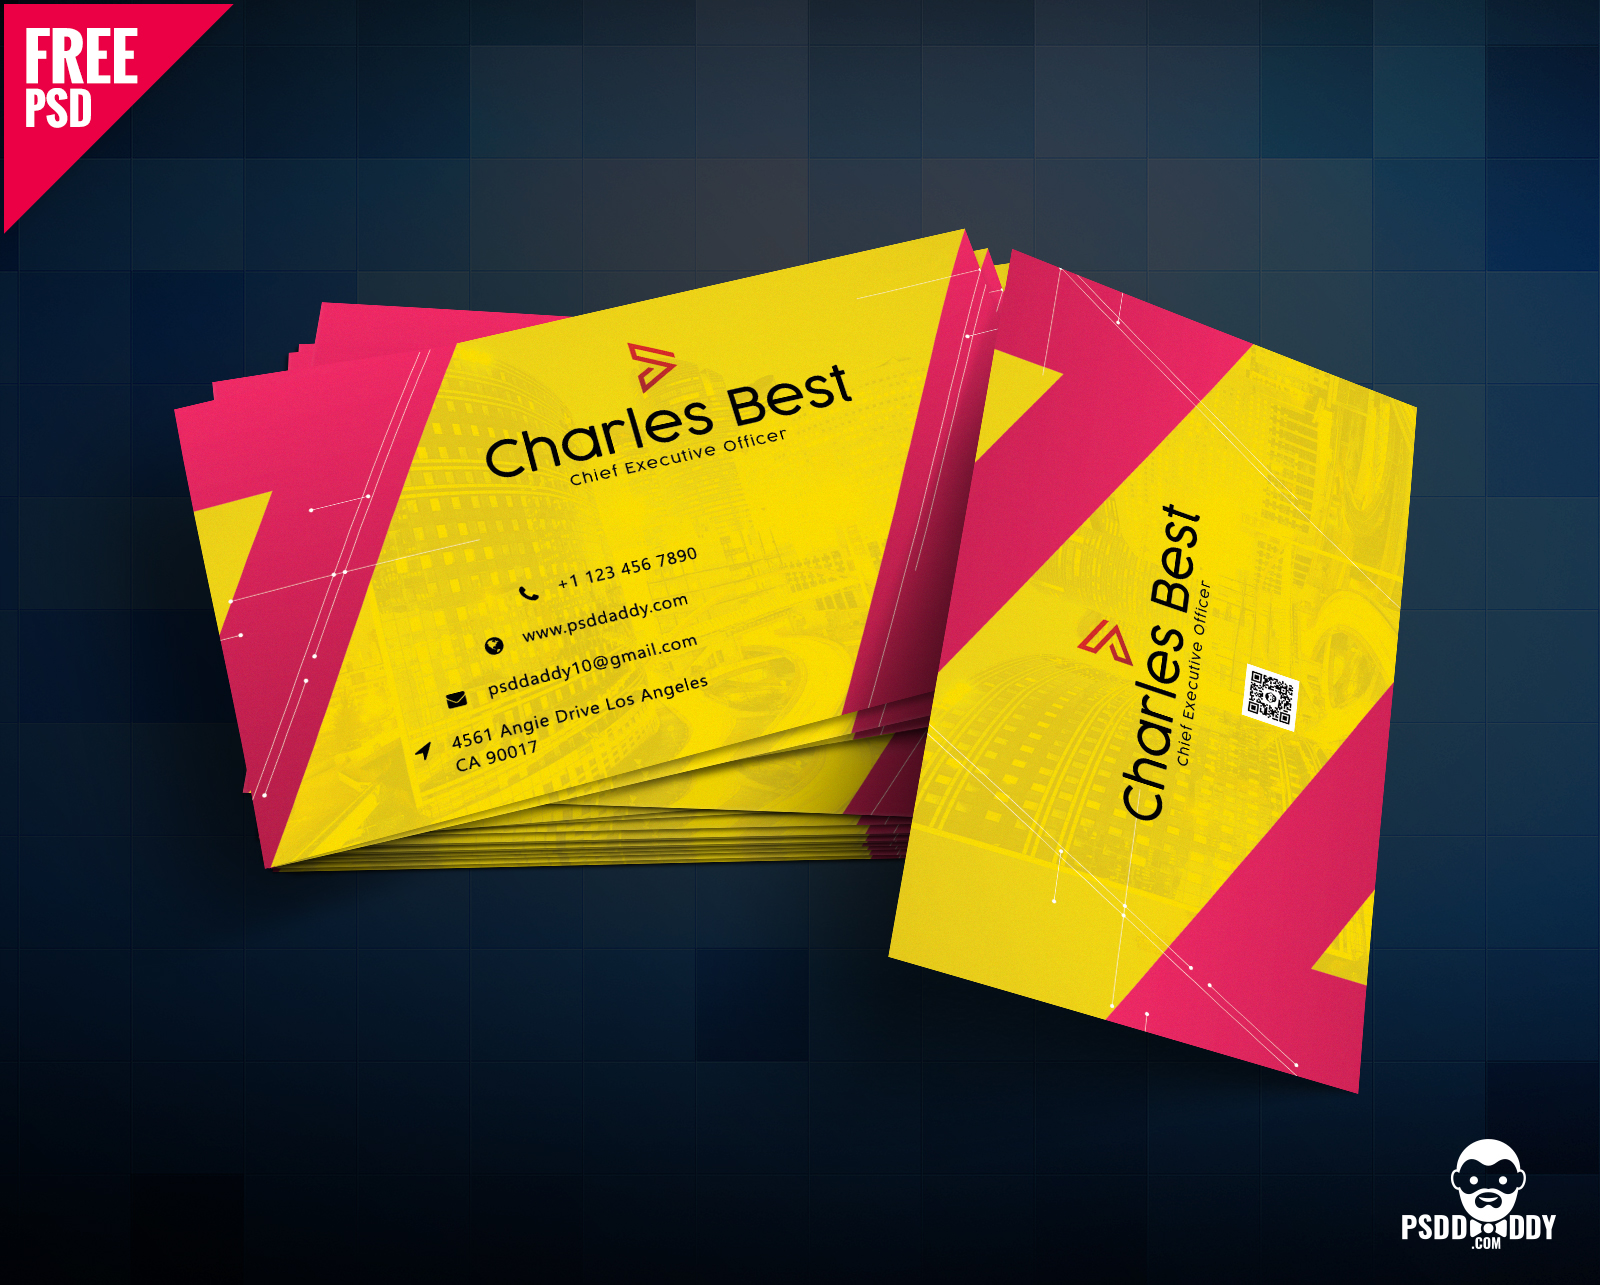 100 free business card psd templates creative business card template psd free download reheart Choice Image